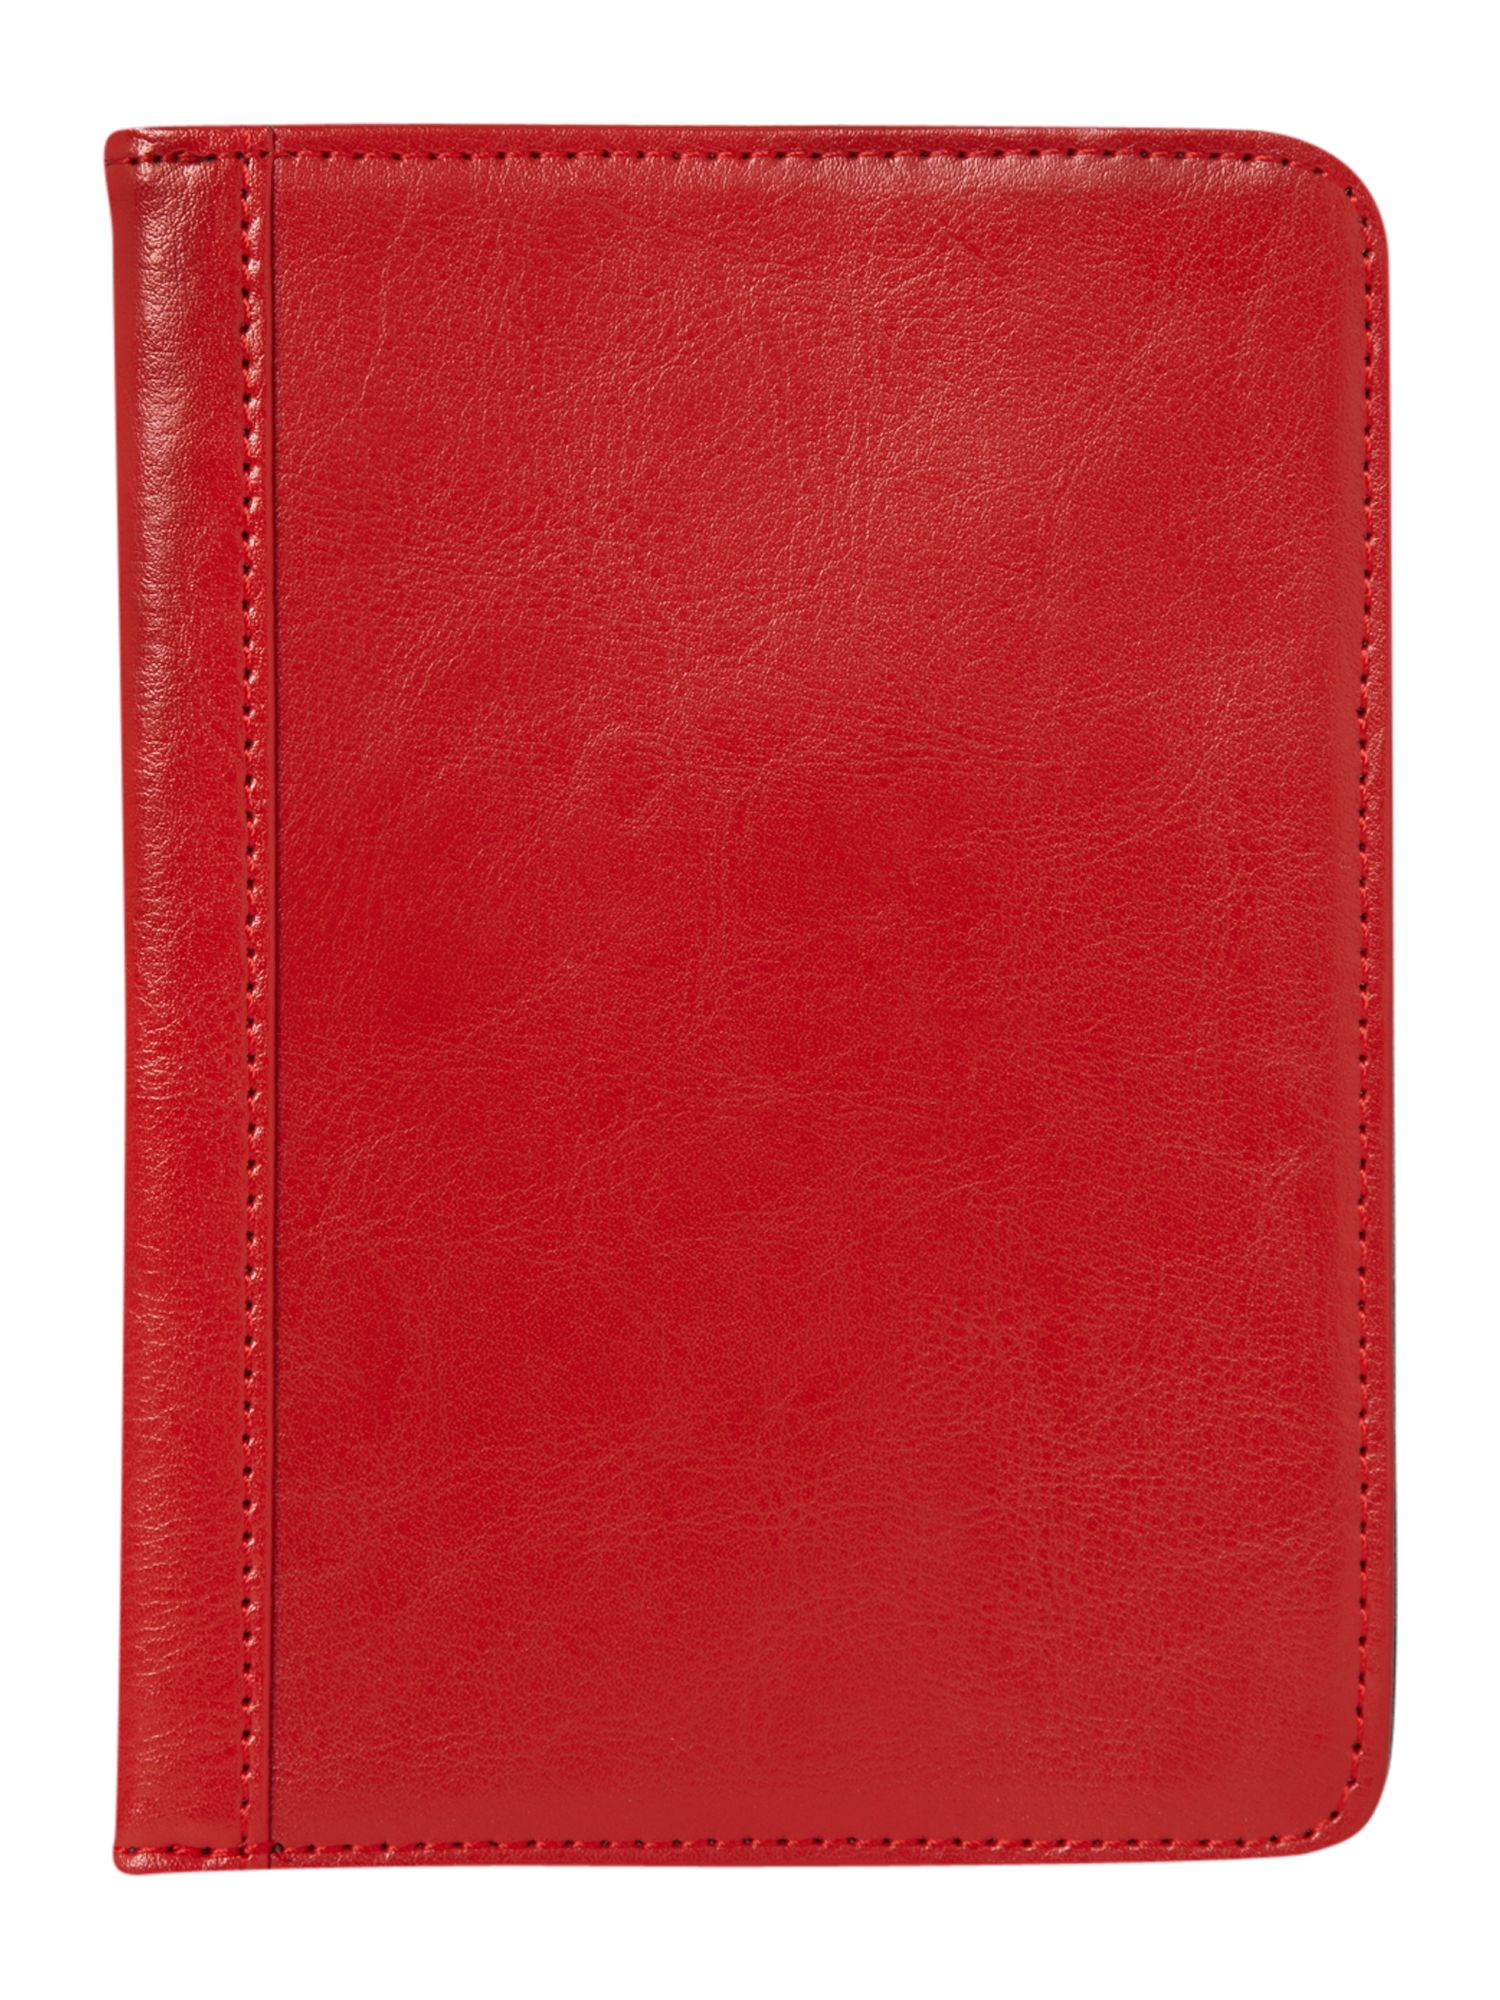 Red leather kindle case